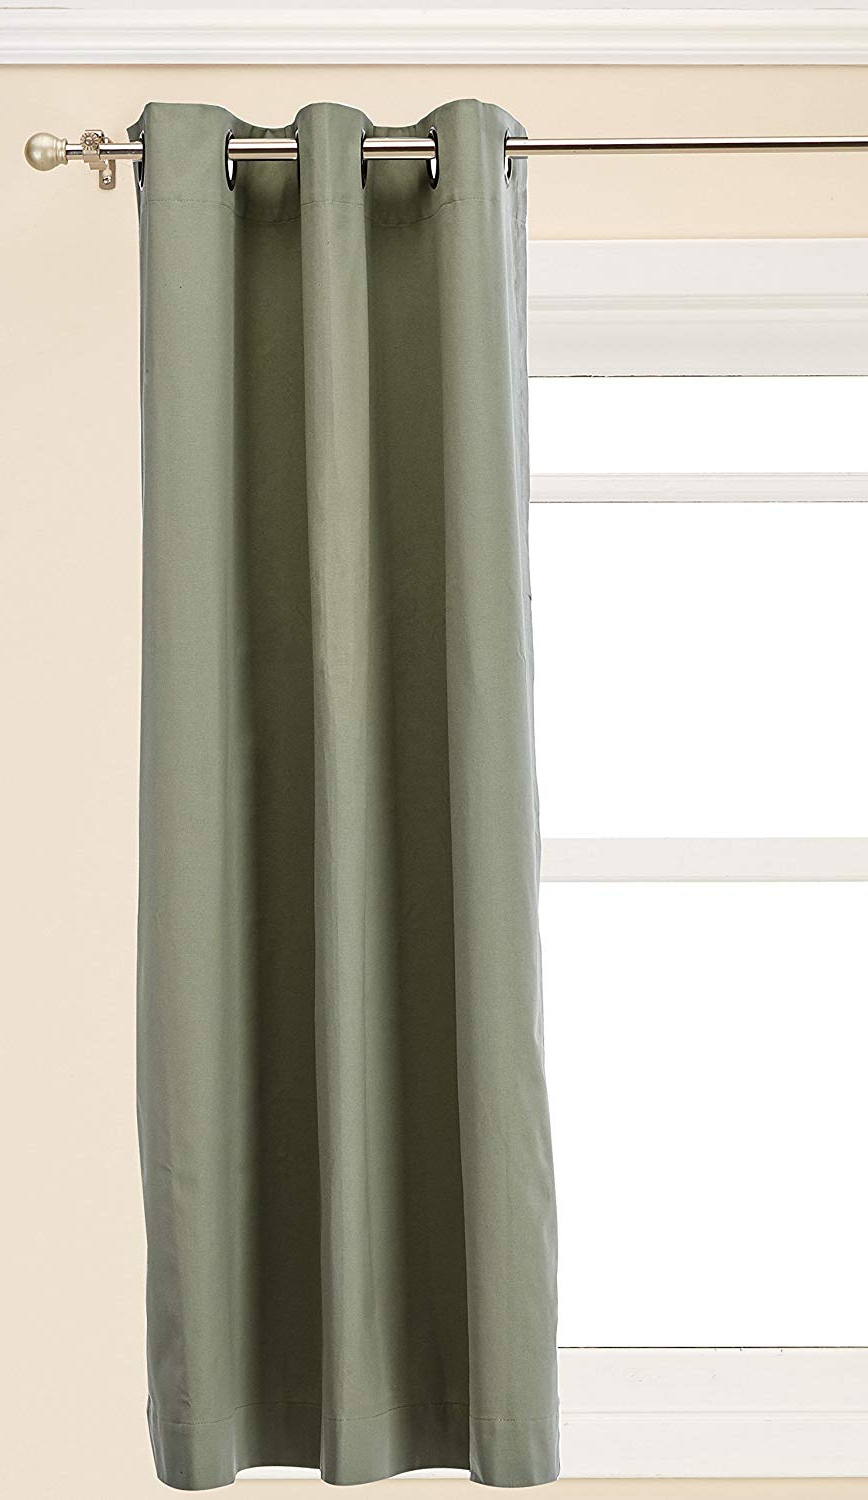 Thermalogic Insulated Cotton Panels Pair, 8054 Inch, Sage For Best And Newest Insulated Cotton Curtain Panel Pairs (View 4 of 20)